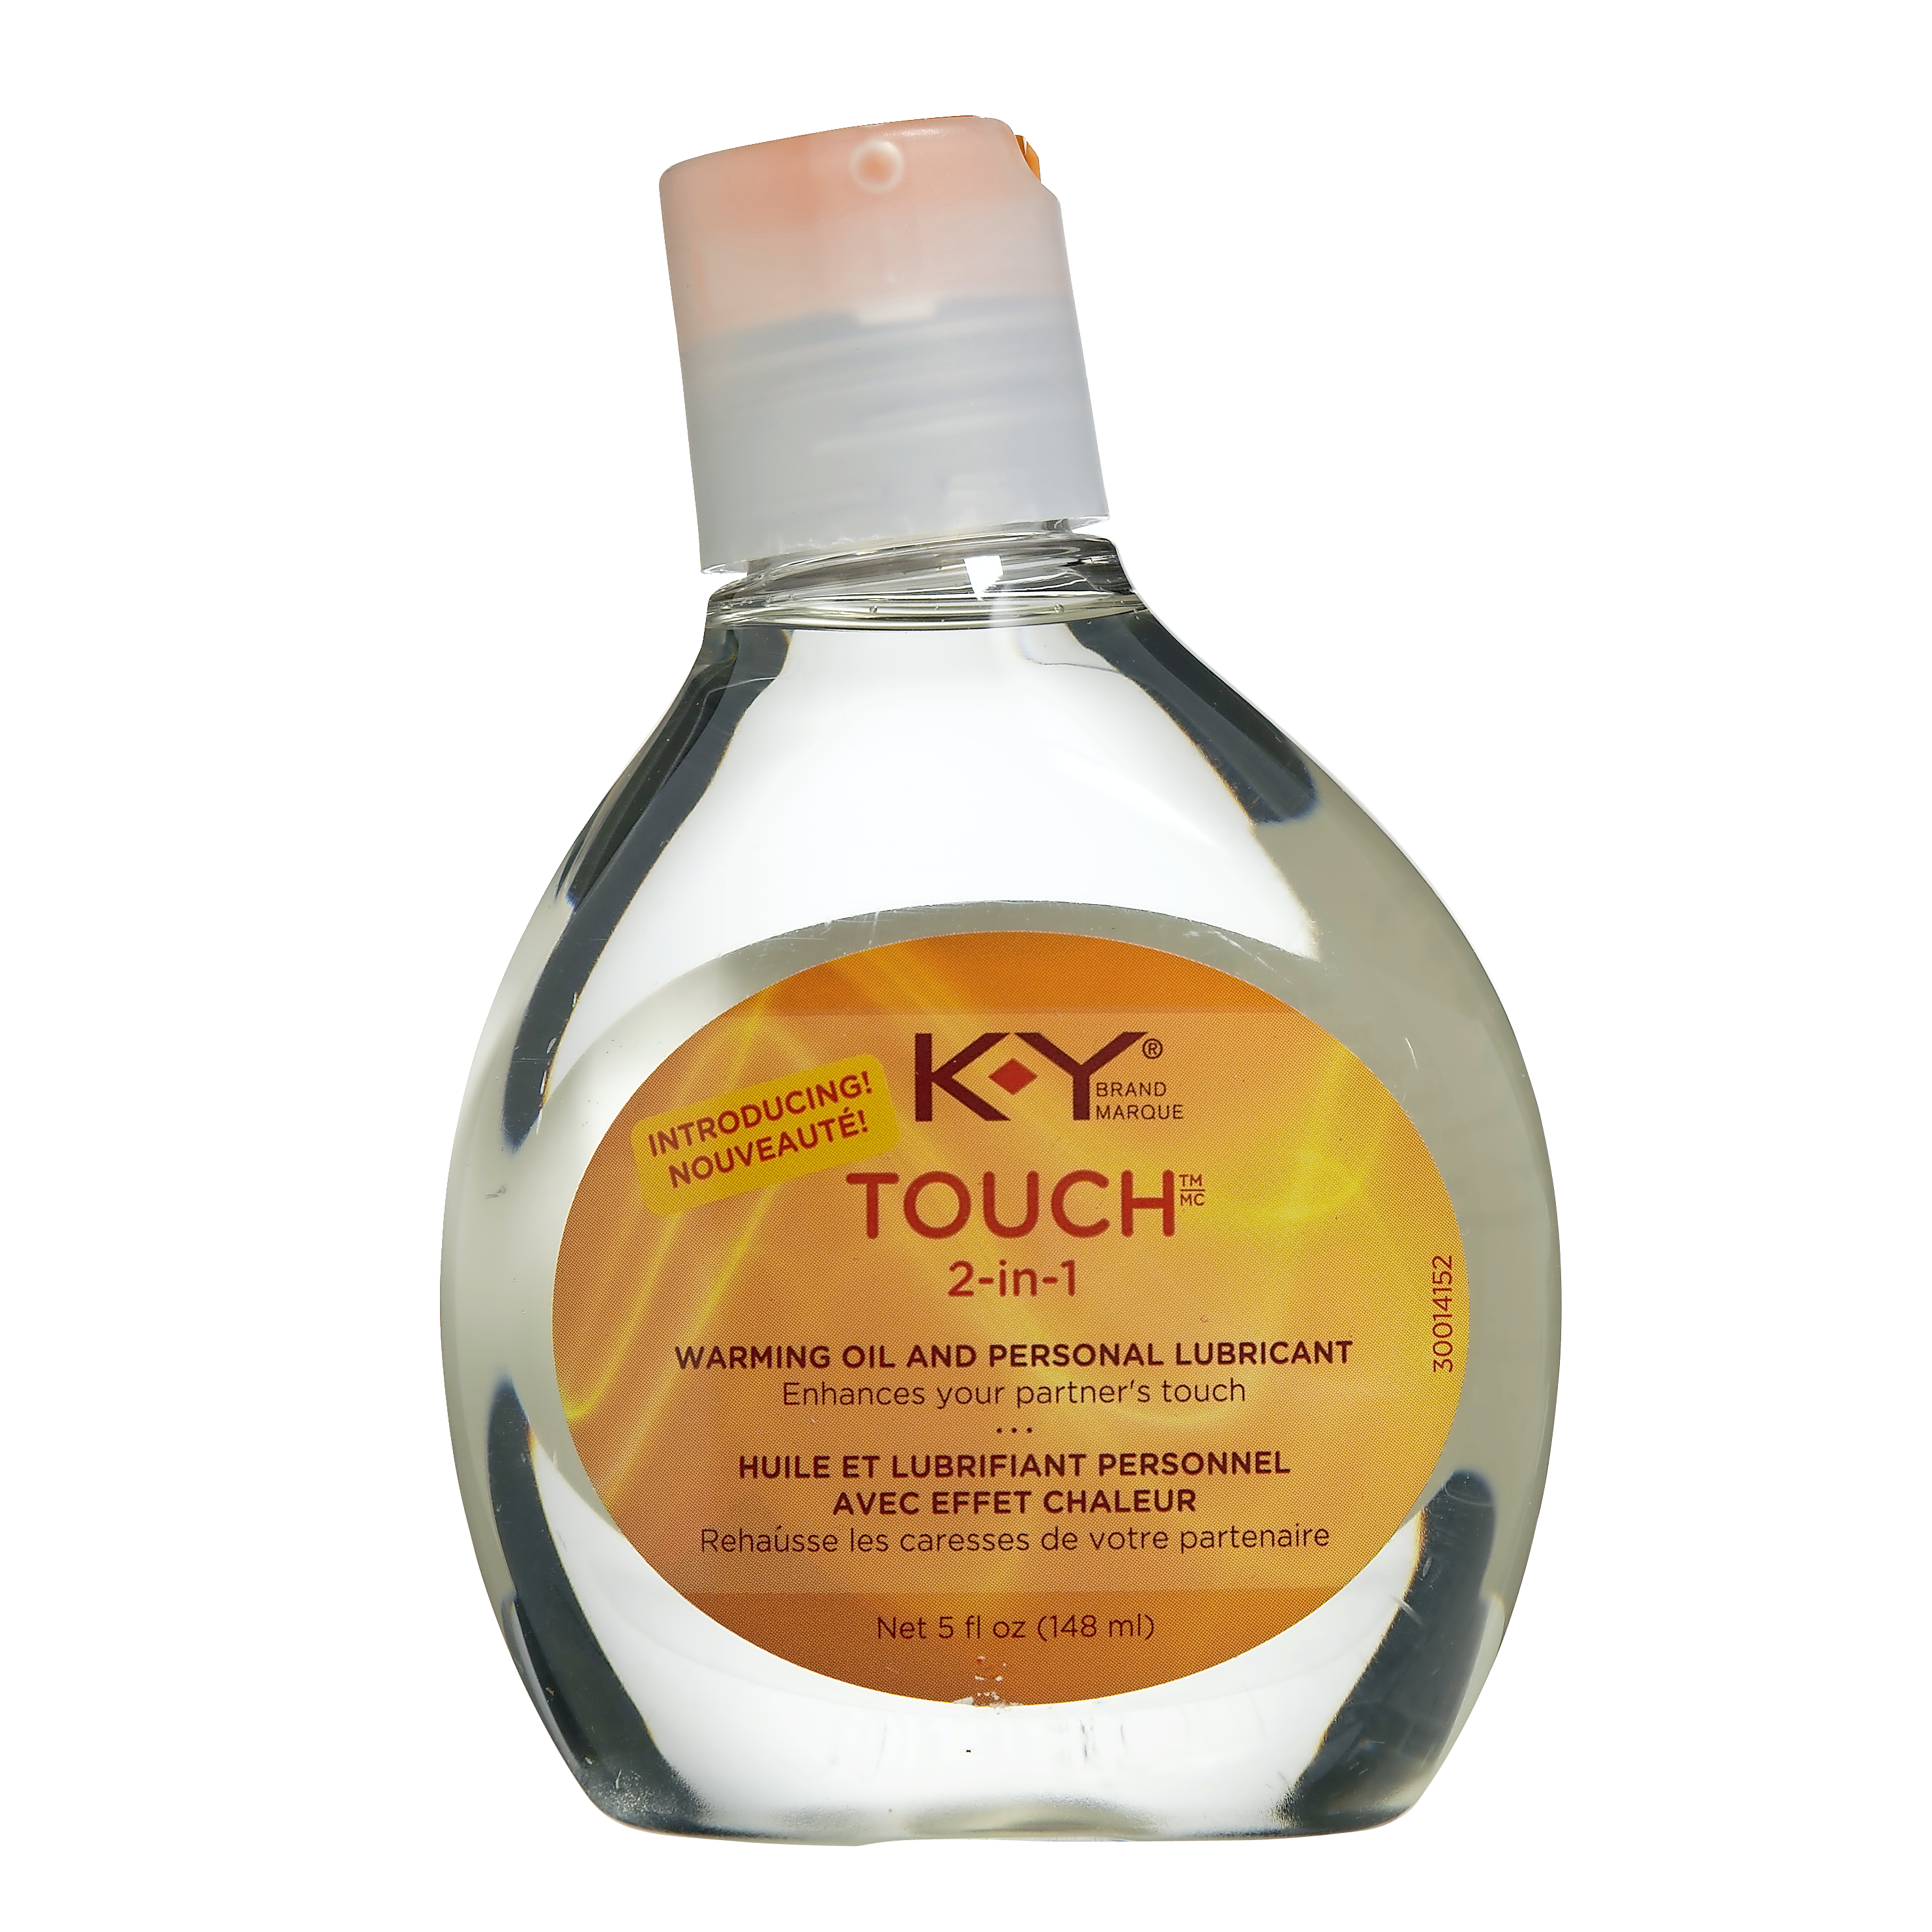 K-Y Touch 2 in 1 Warming Oil and Personal Lubricant 148 mL